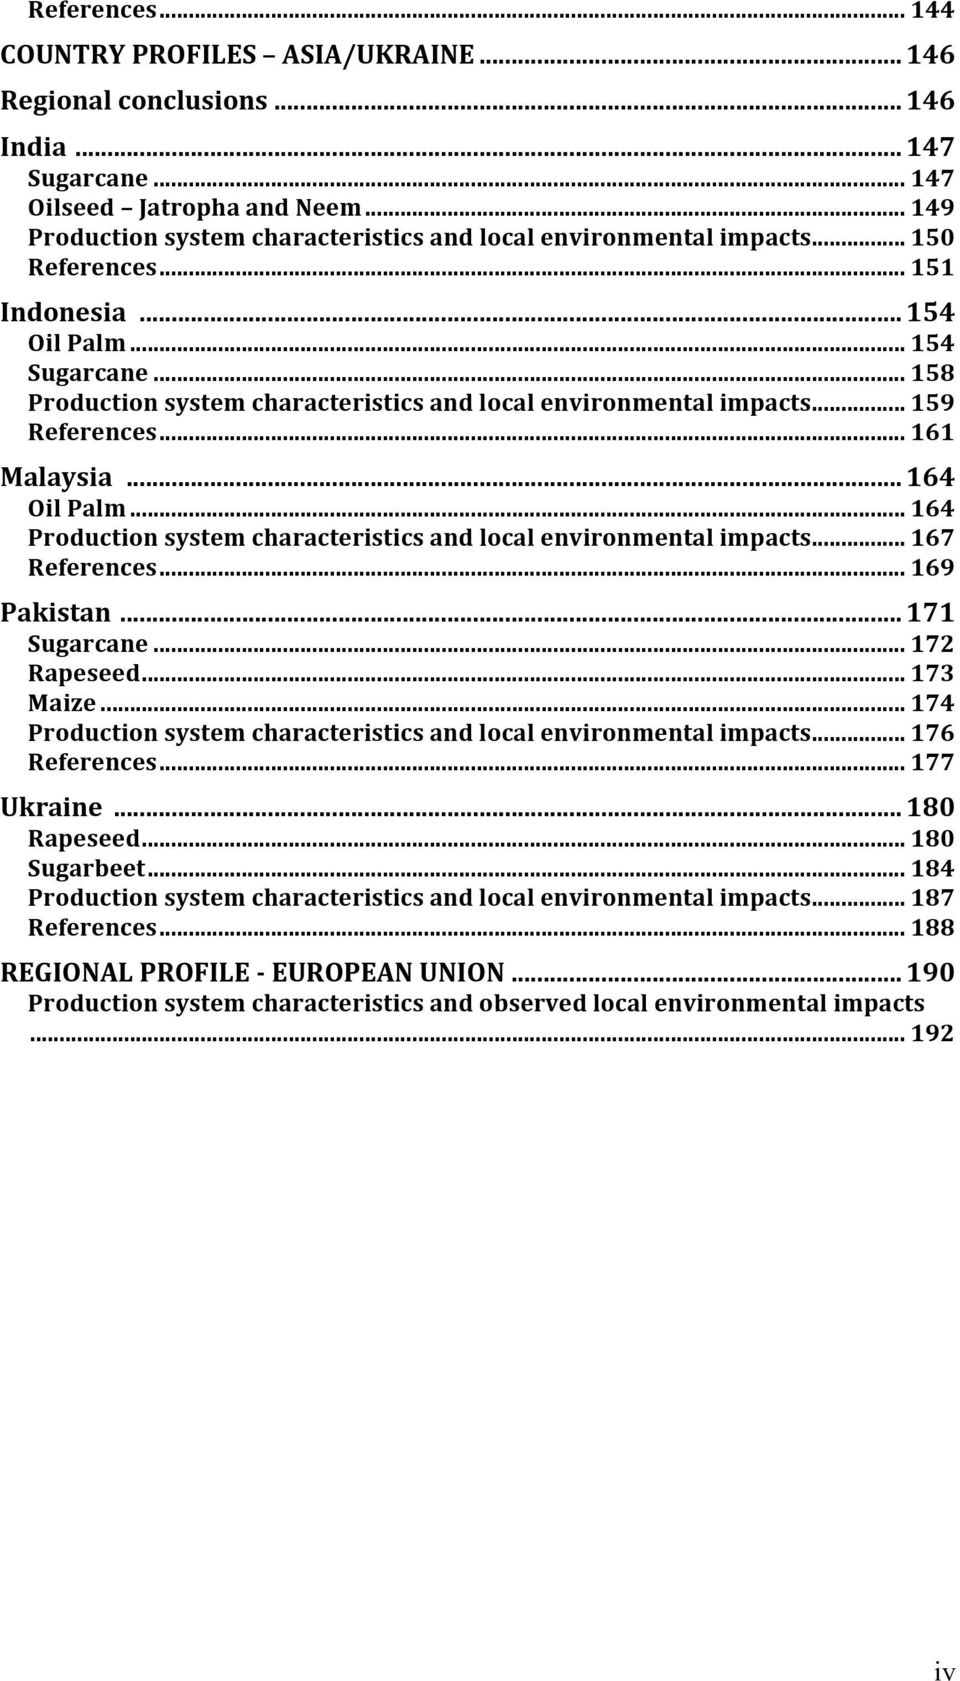 Production)system)characteristics)and)local)environmental)impacts)...)159! References)...)161! Malaysia )...)164! Oil)Palm)...)164! Production)system)characteristics)and)local)environmental)impacts).